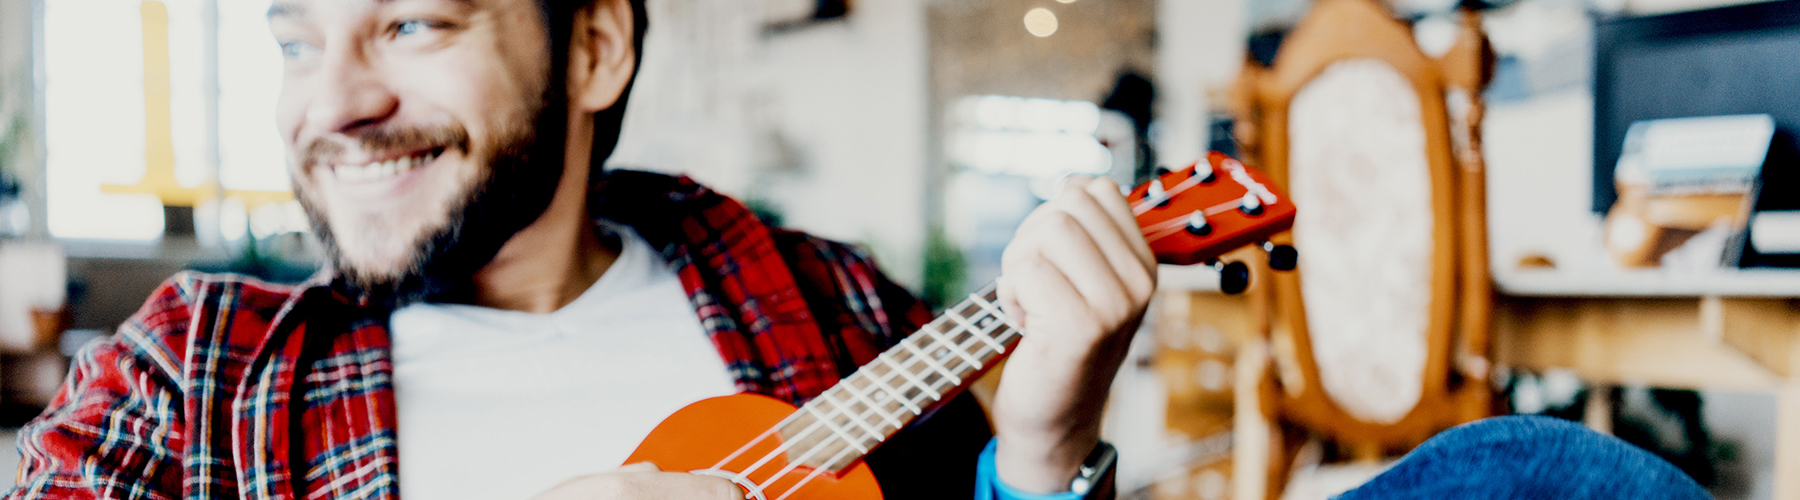 Turner Center Offers Ukulele Lessons for Adults